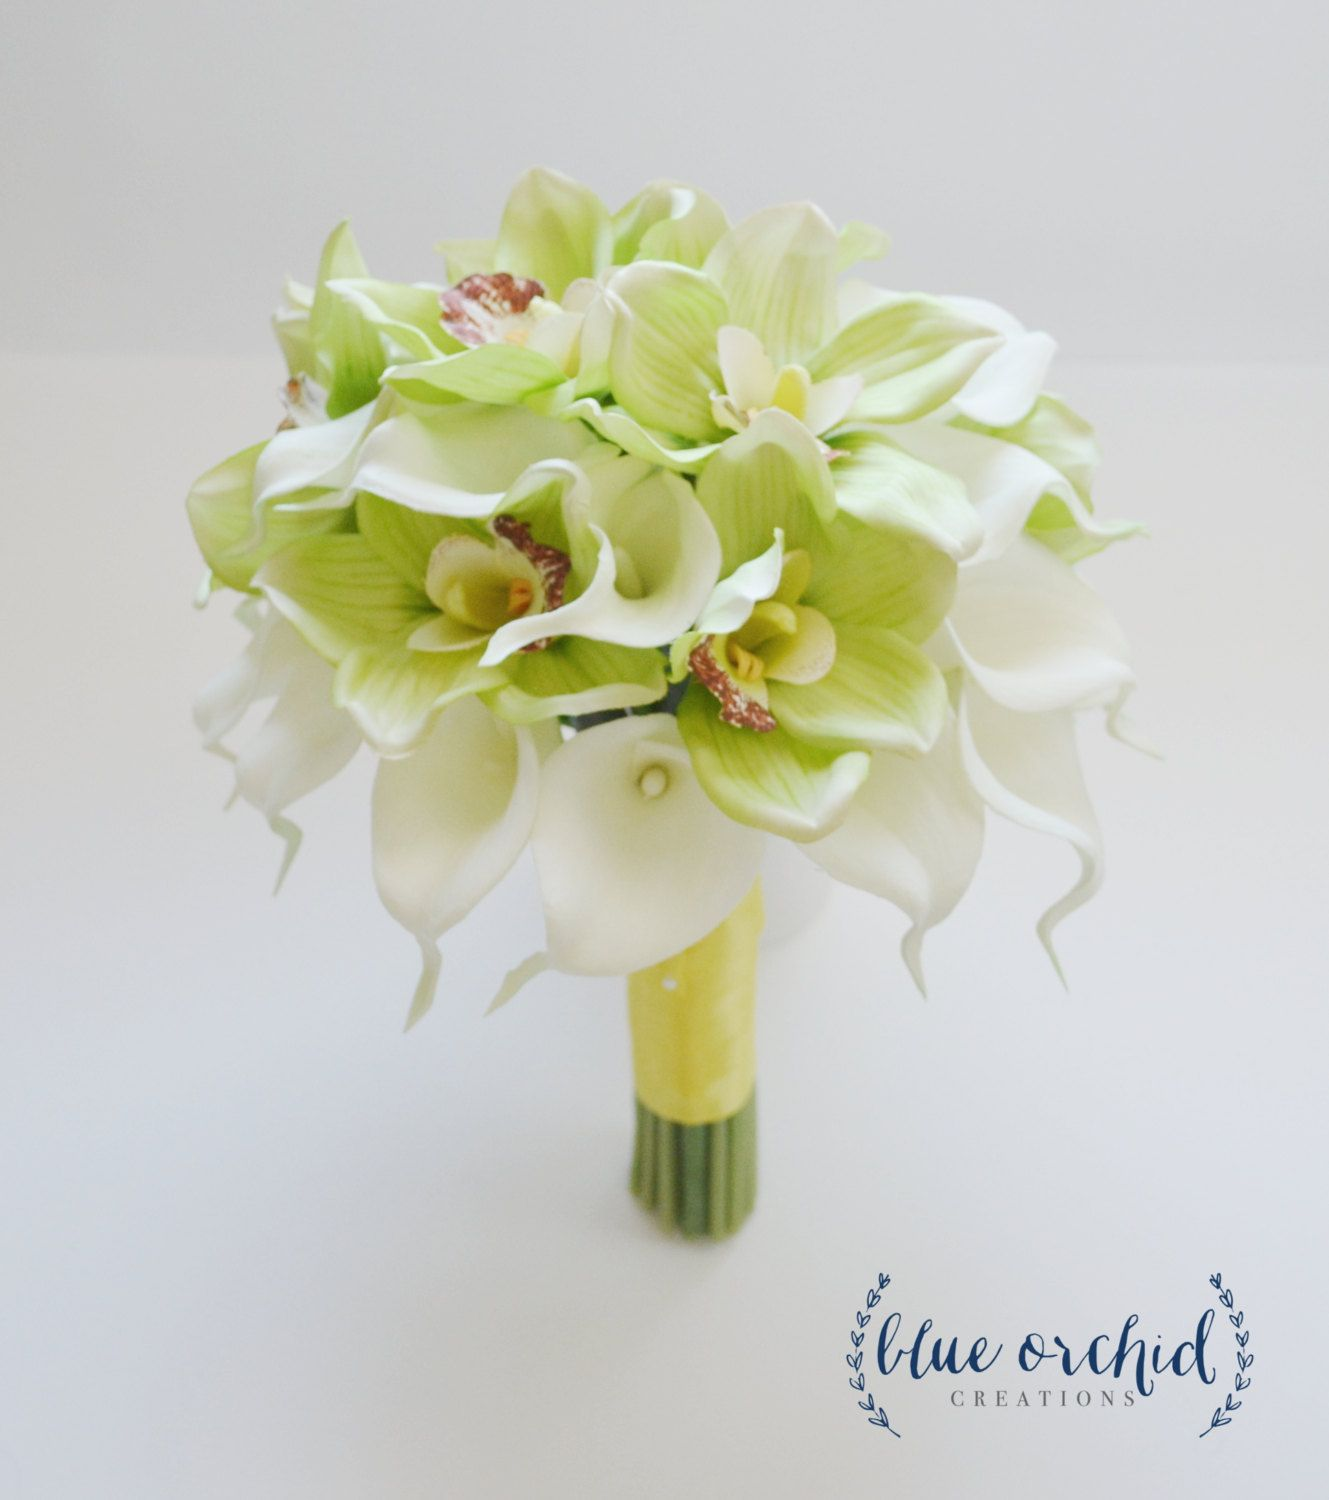 Cymbidium Orchid And Calla Lily Tropical Wedding Bouquet In Cream And Lime Green With Images Tropical Wedding Bouquets Beautiful Bridal Bouquet Tropical Wedding